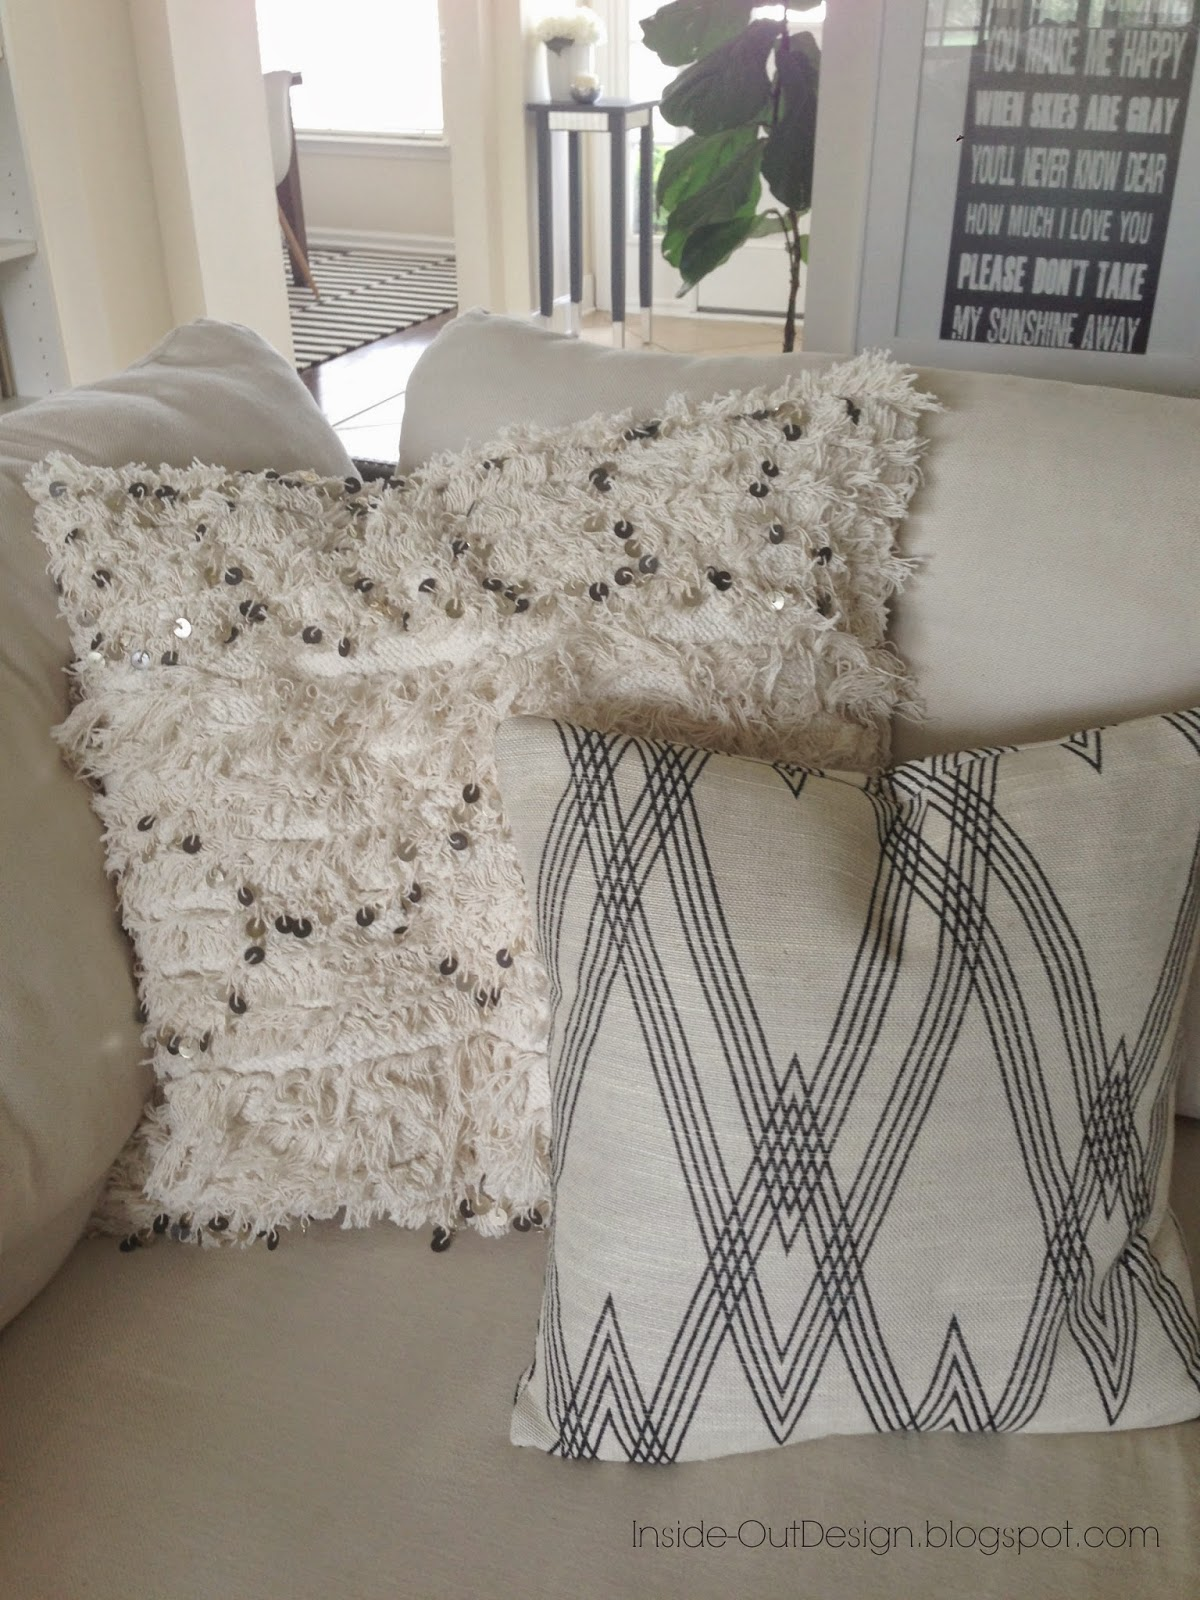 Inside-Out Design: Moroccan Wedding Blanket Pillow Covers